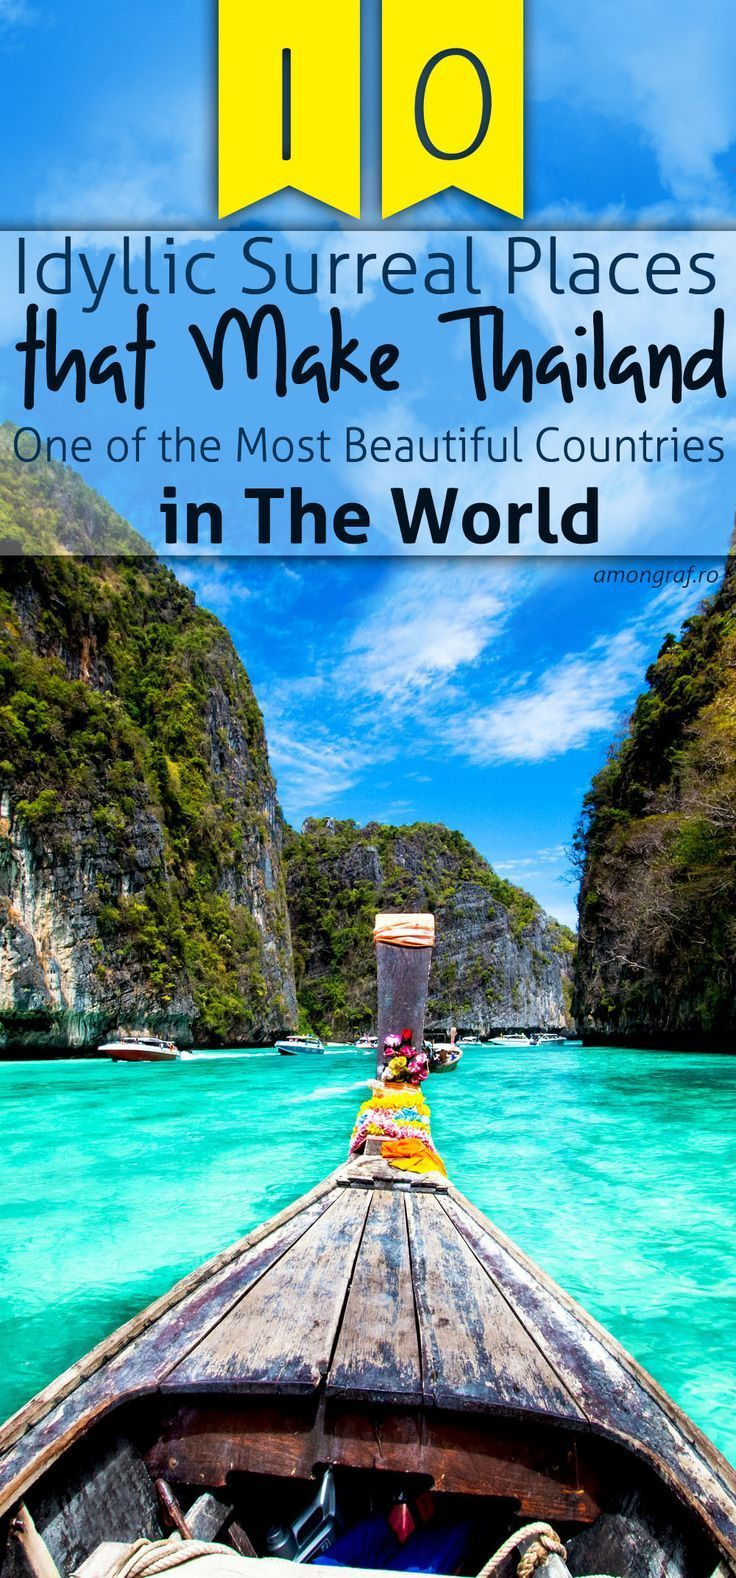 10 Idyllic Surreal Places That Make Thailand One Of The -1751